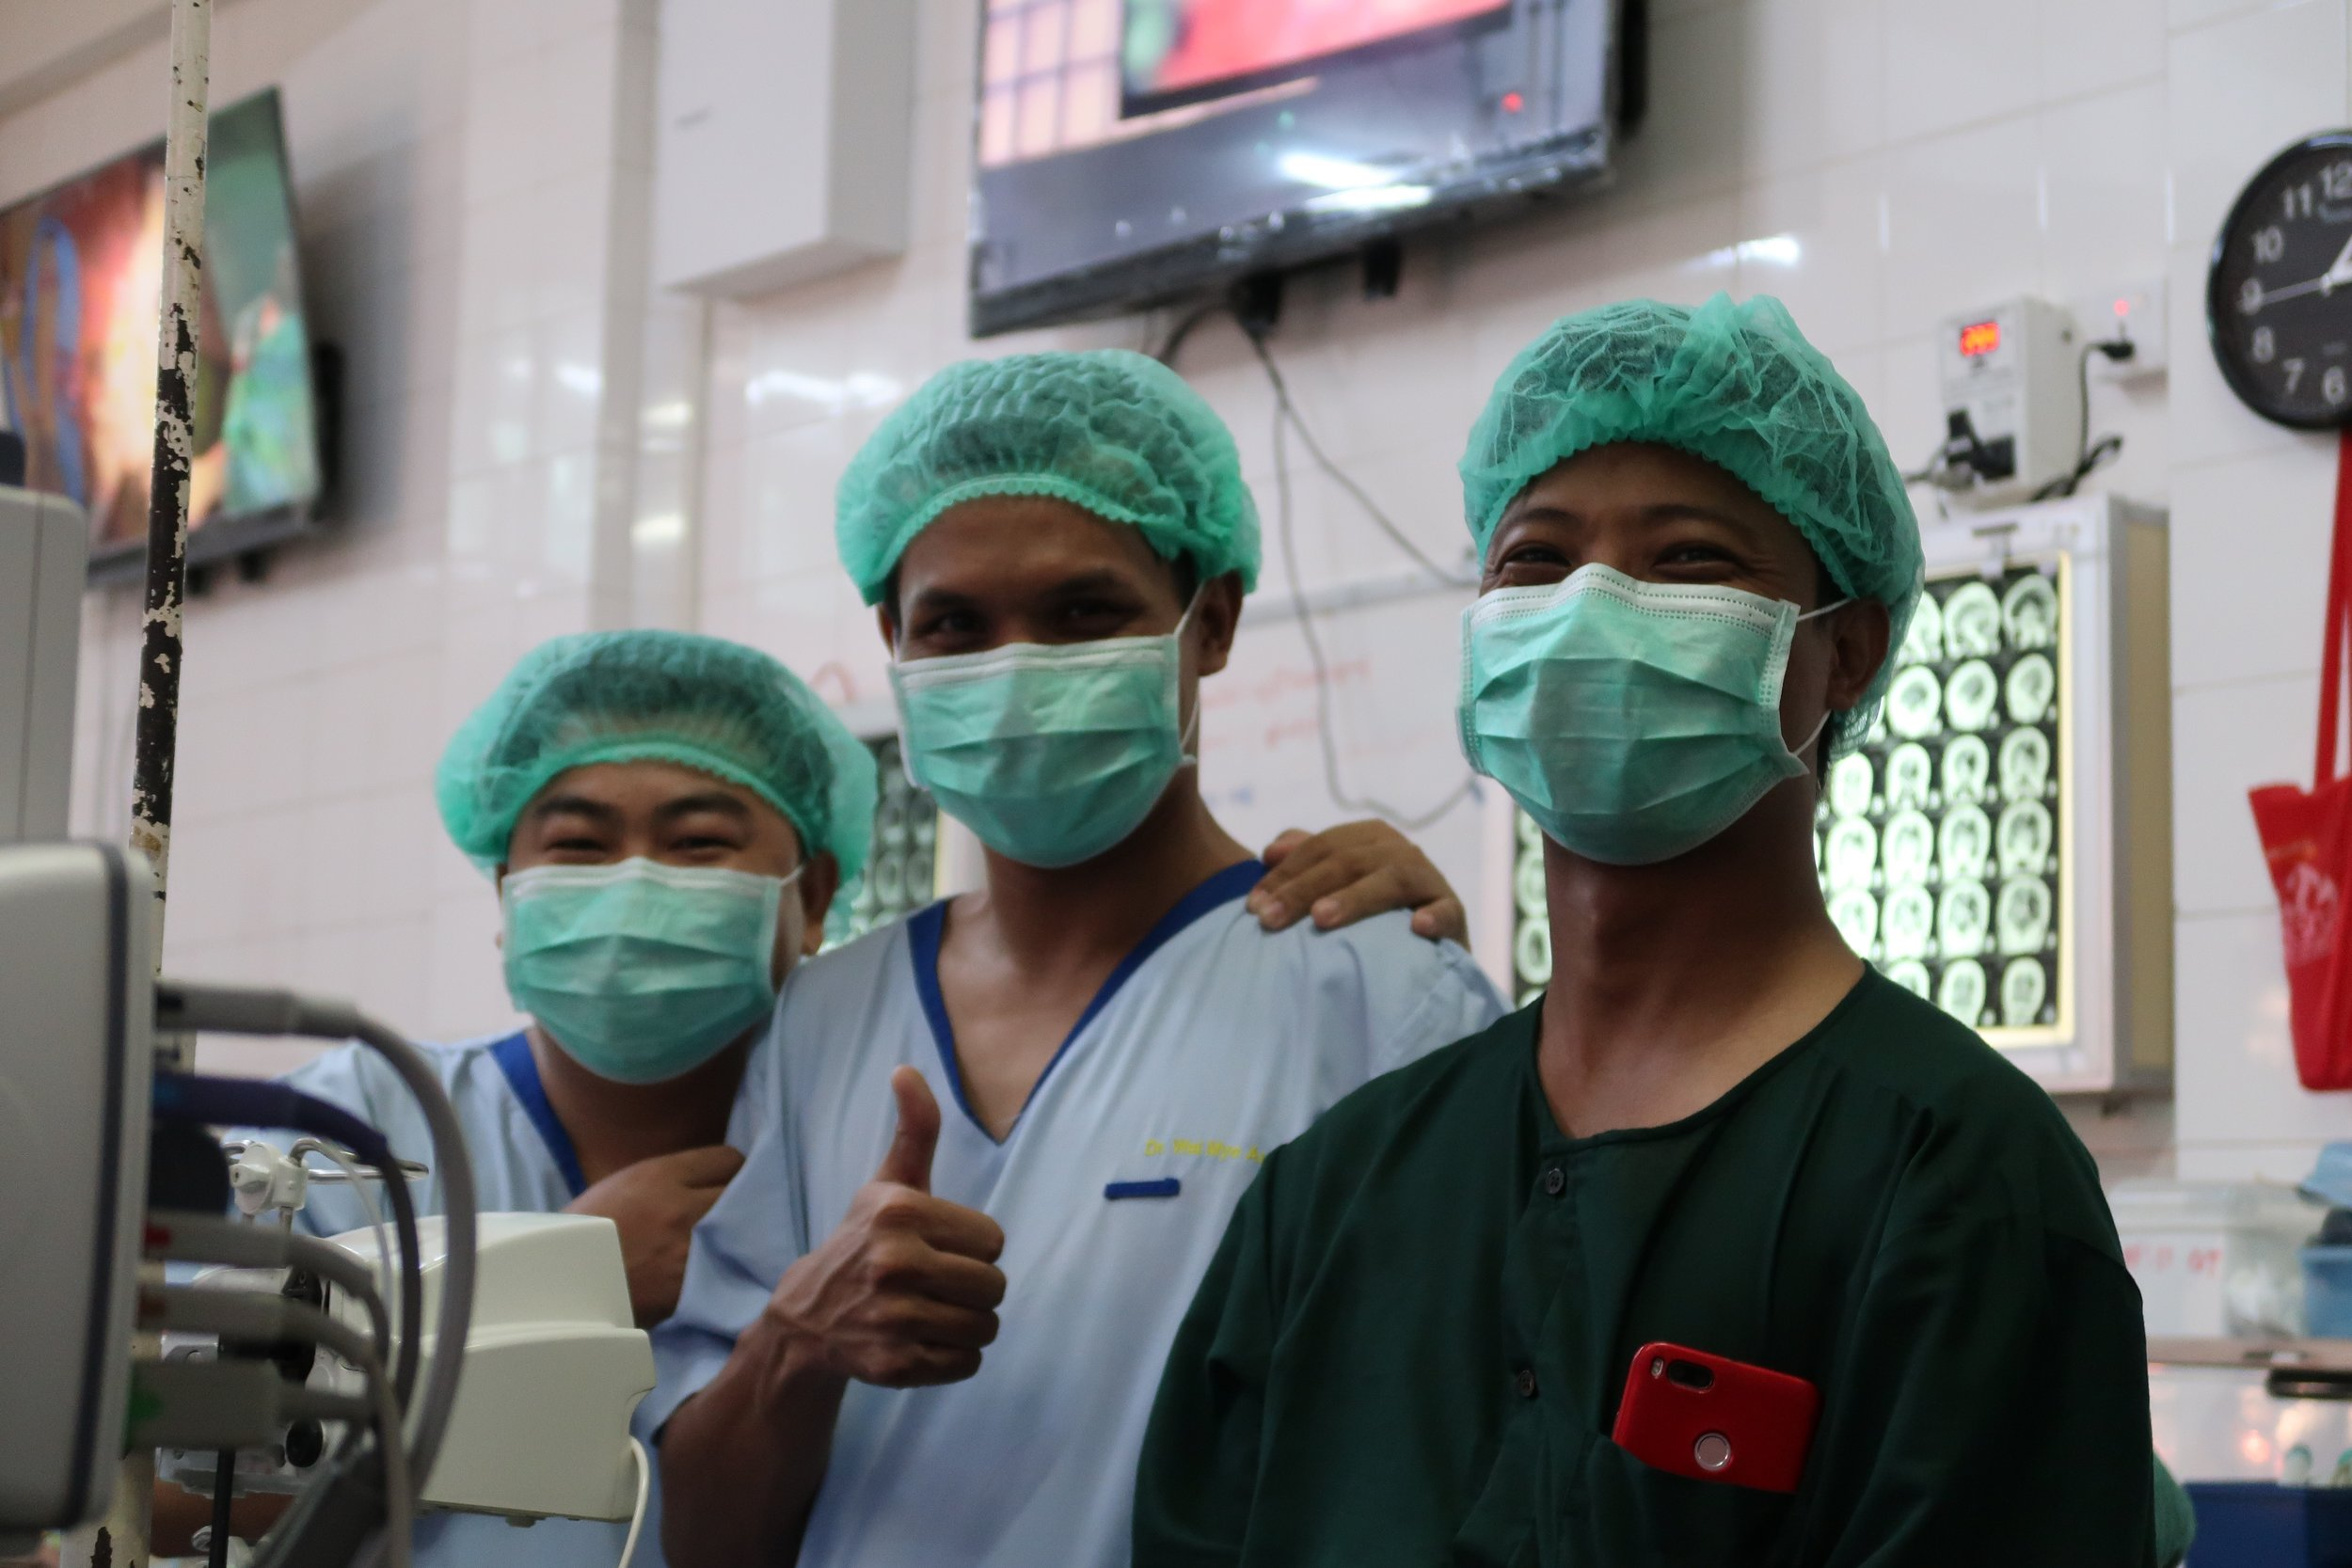 Neurosurgical residents at the University Hospital in Mandalay